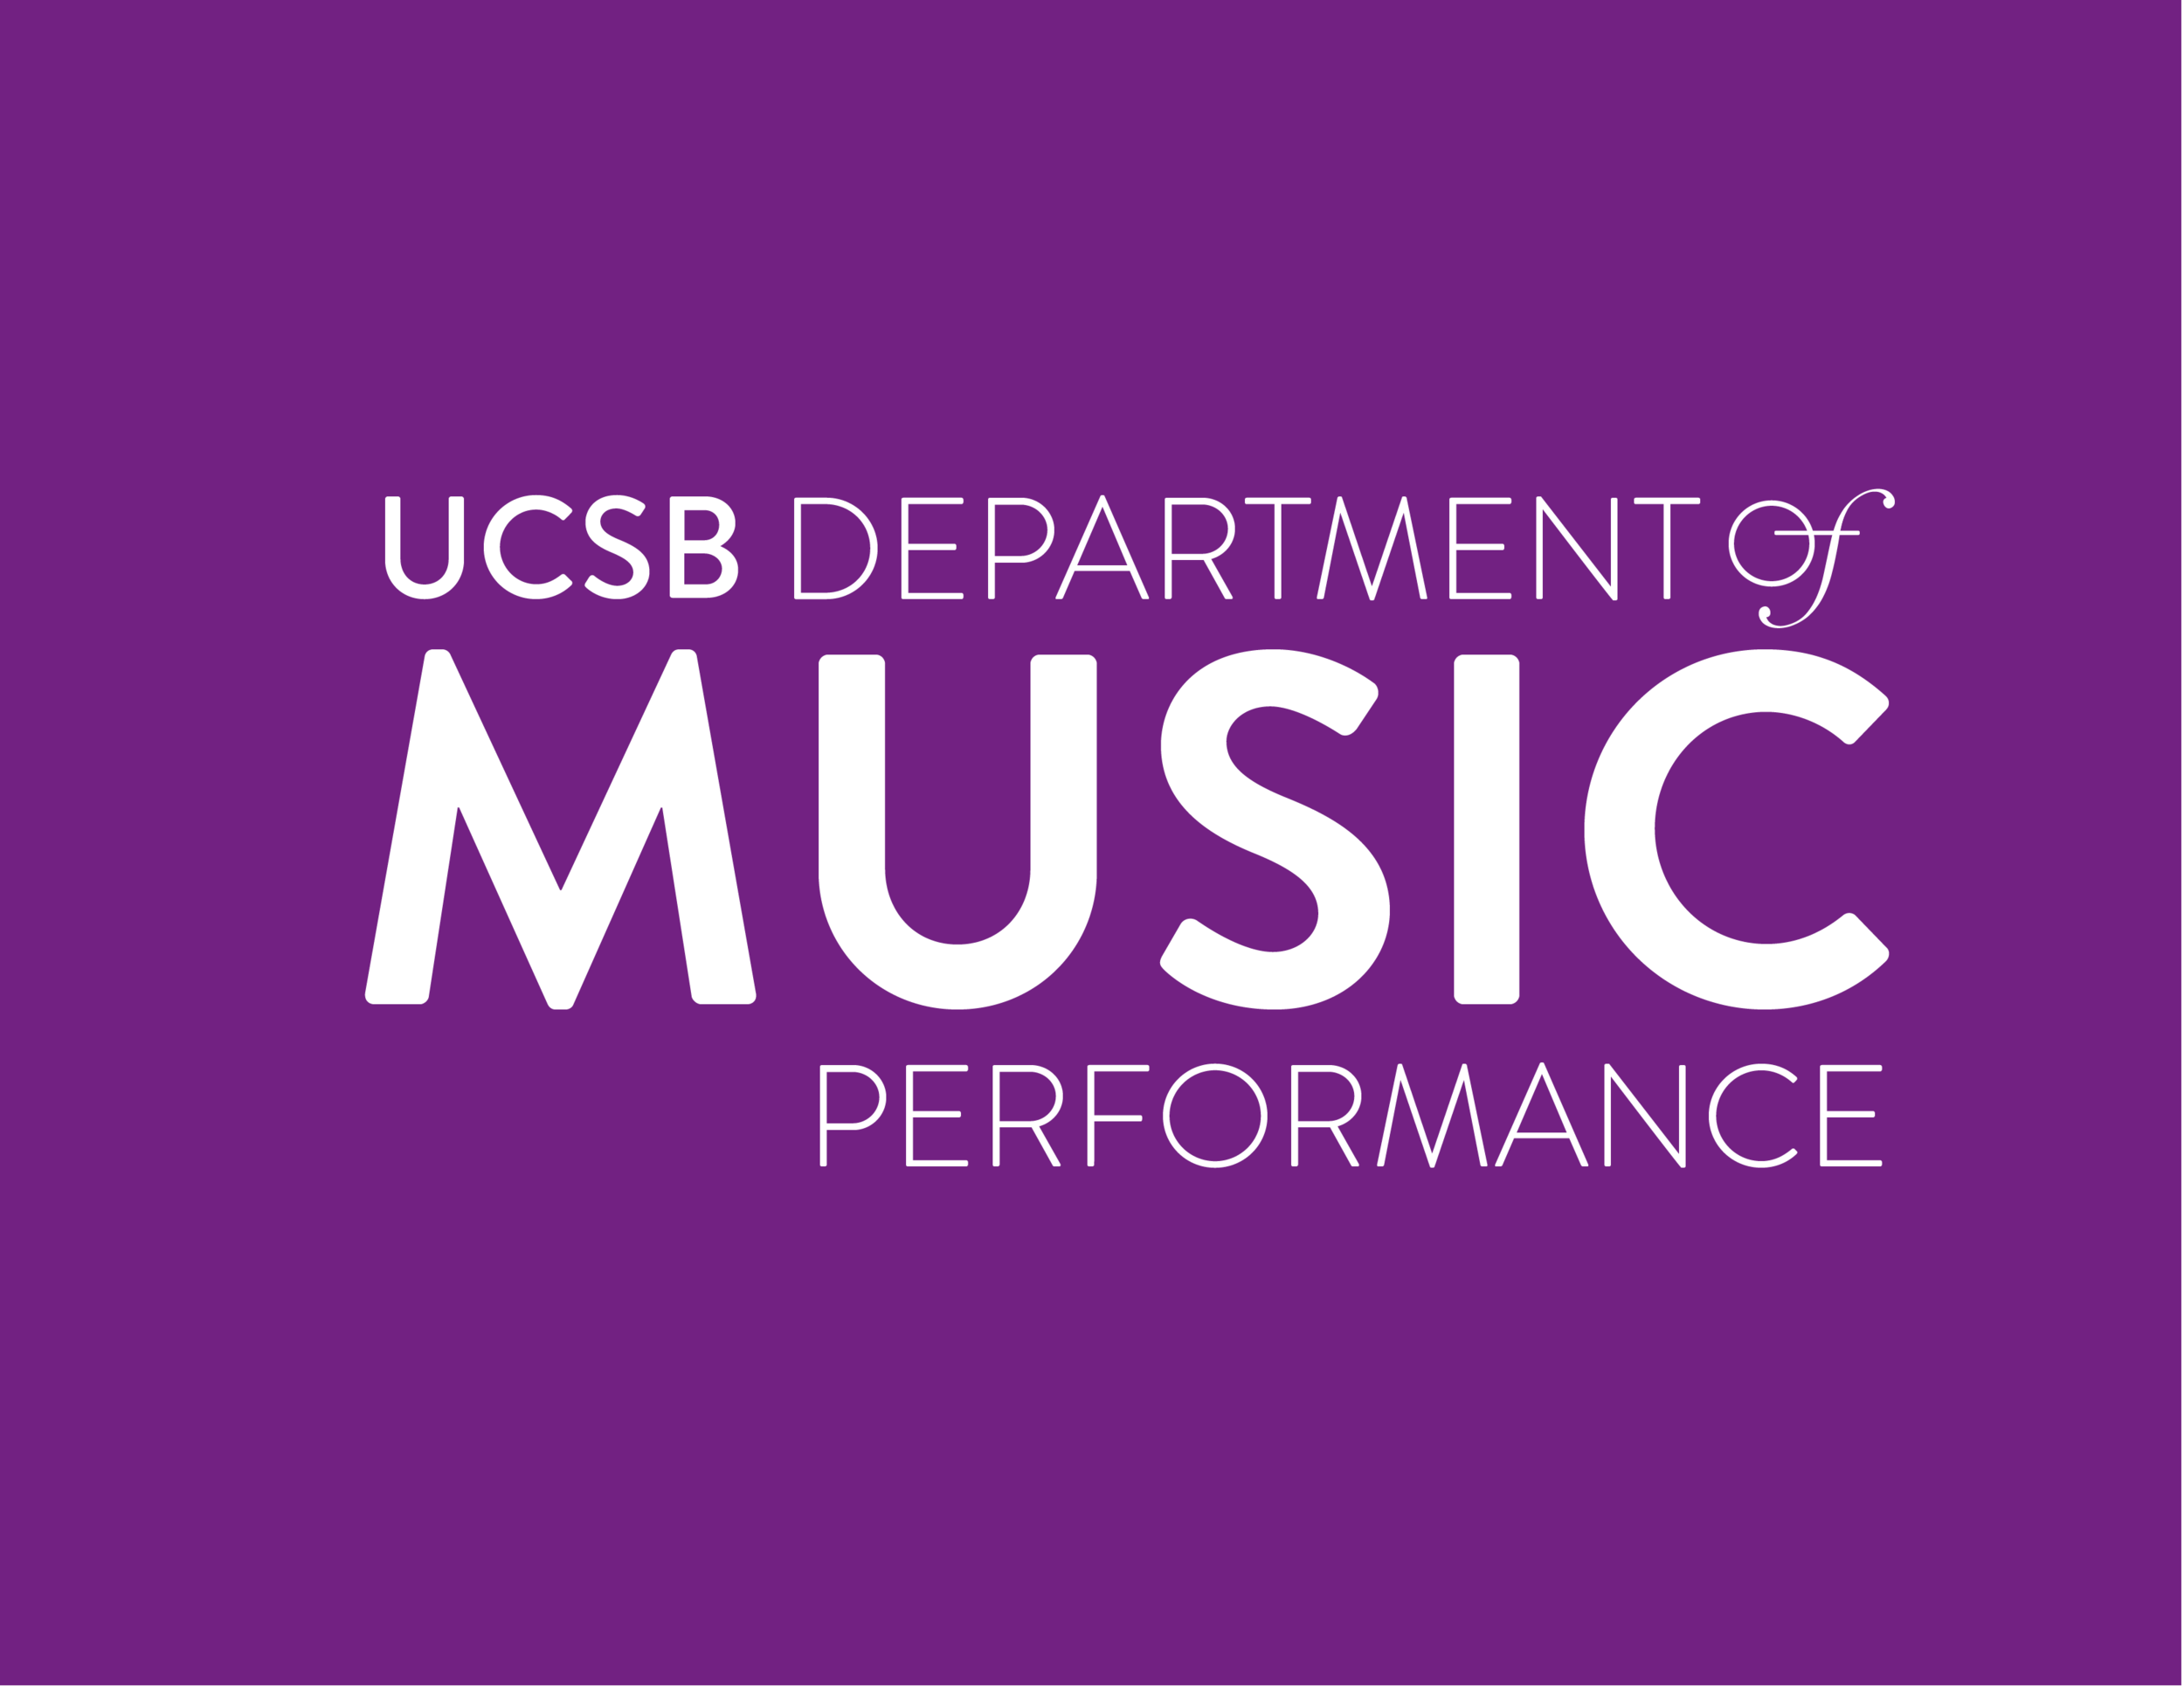 ucsb guidelines new logo and font use FINAL-22.png